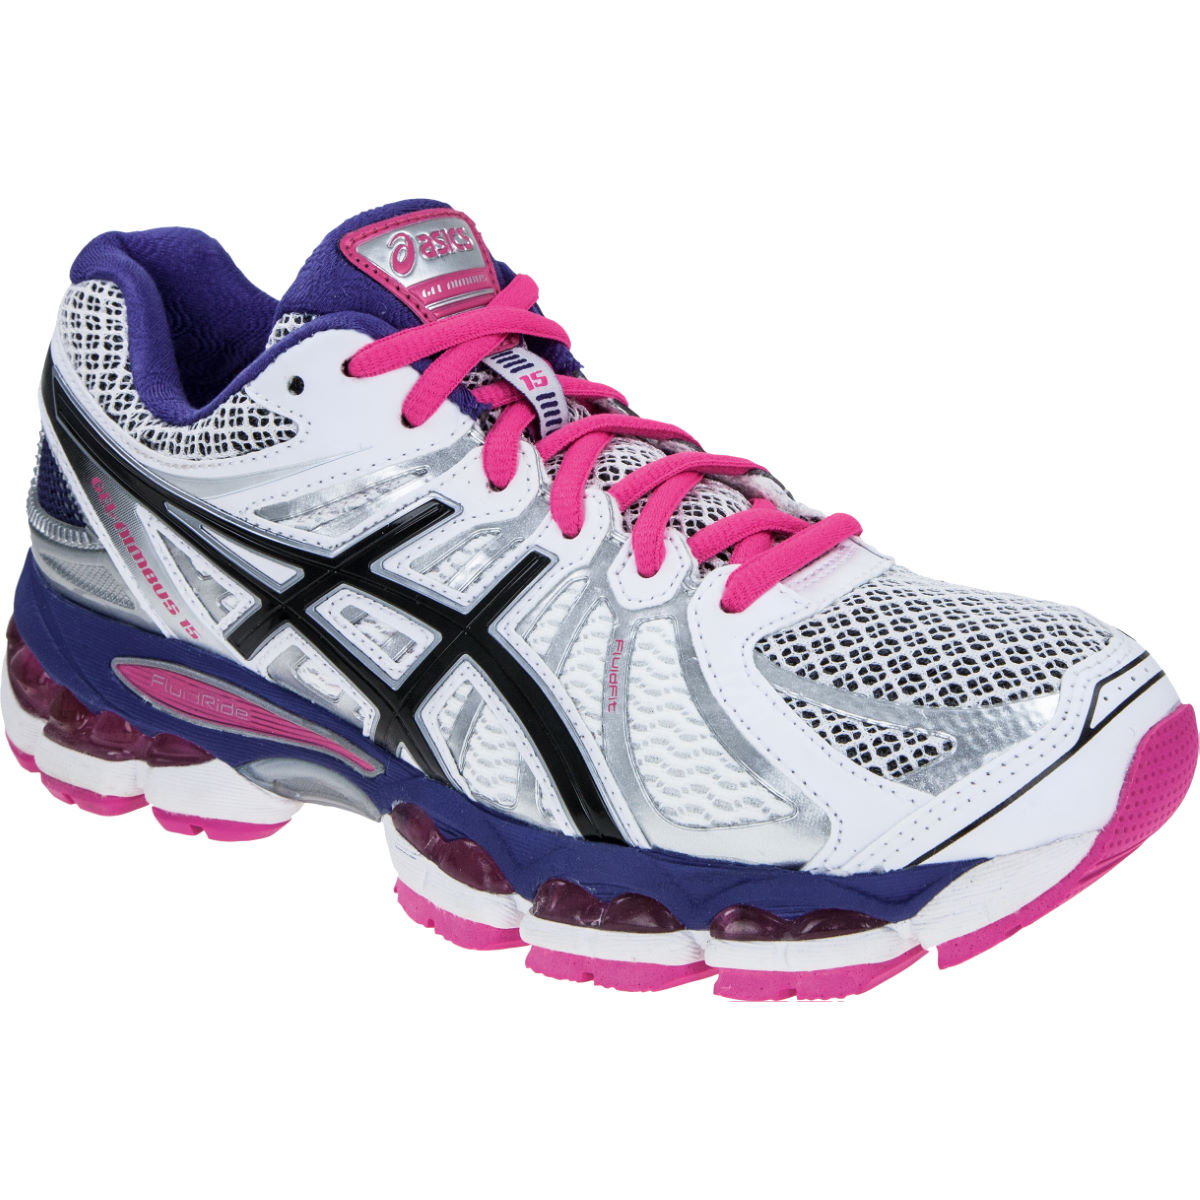 Asics Women's Gel-Nimbus 15 Shoes - SS14